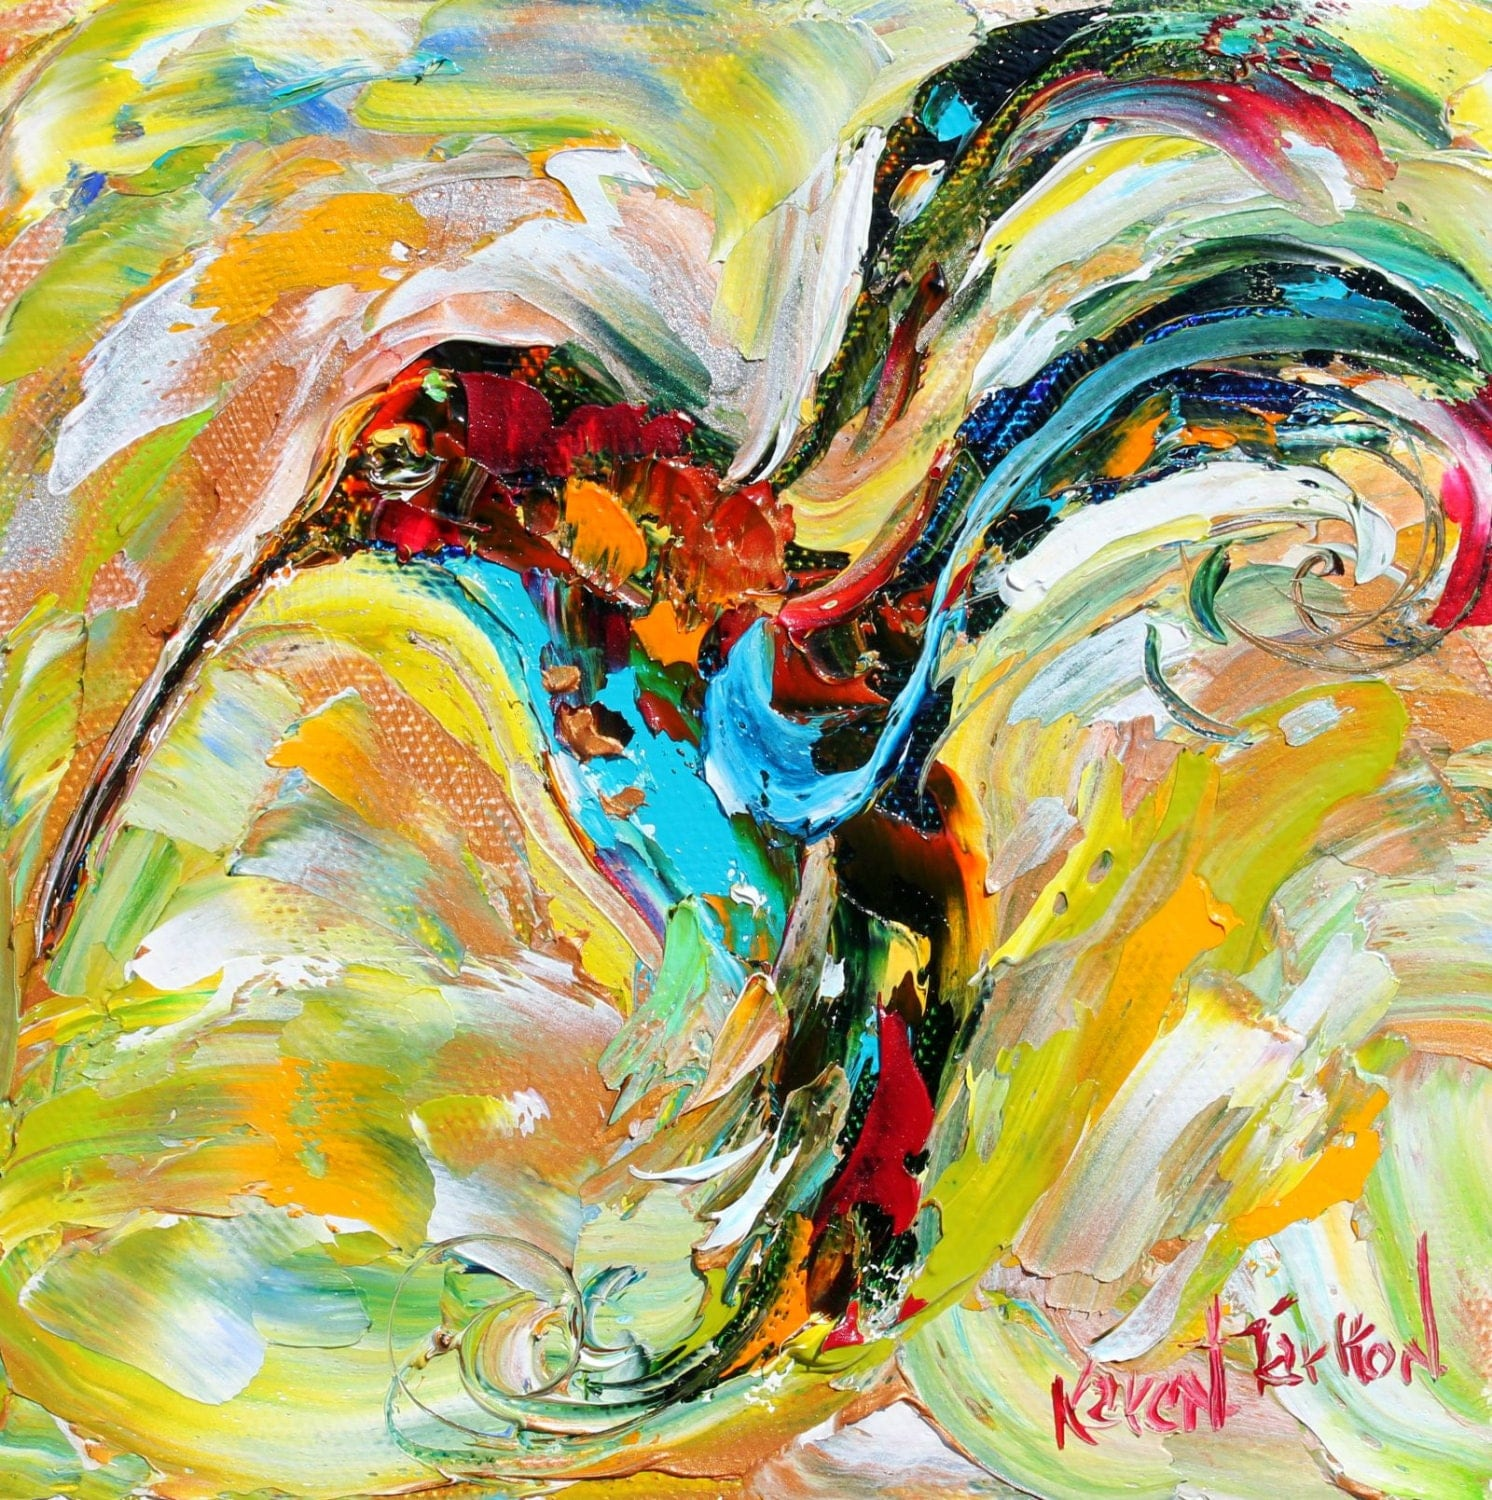 the gallery for abstract bird paintings